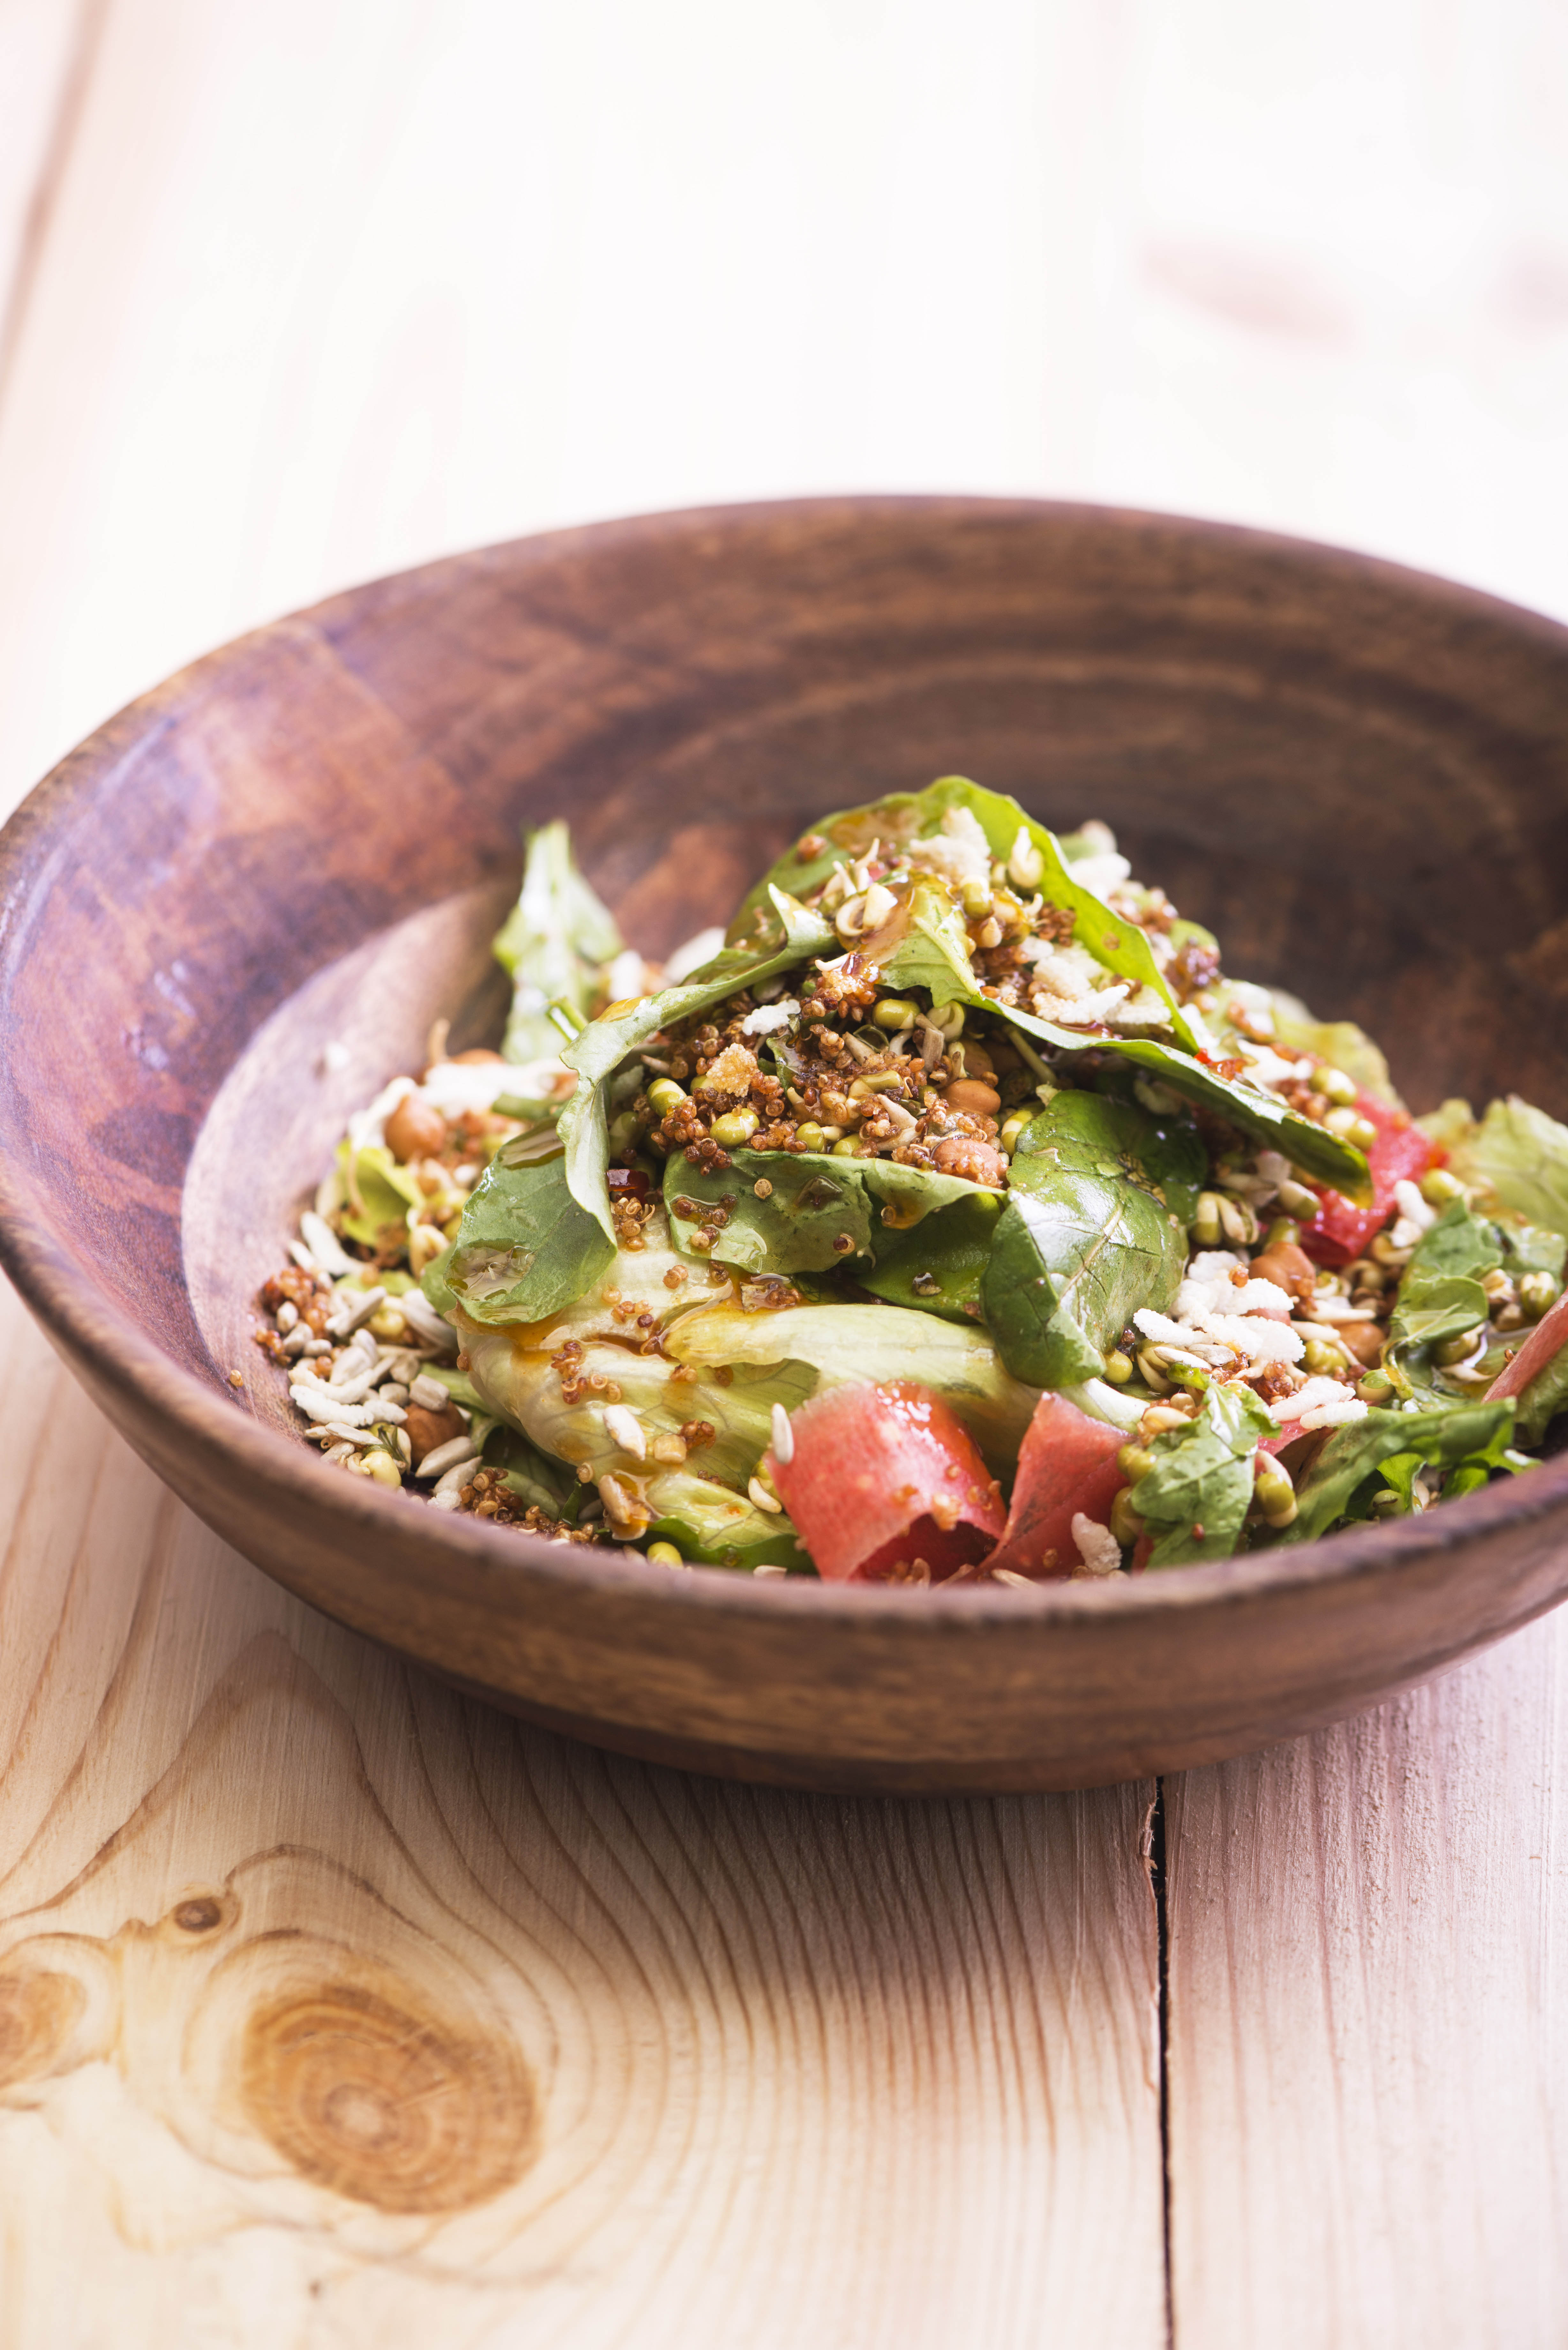 Bean Sprout Salad with Brown Rice Flakes & Crispy Quinoa/©Smoke House Deli